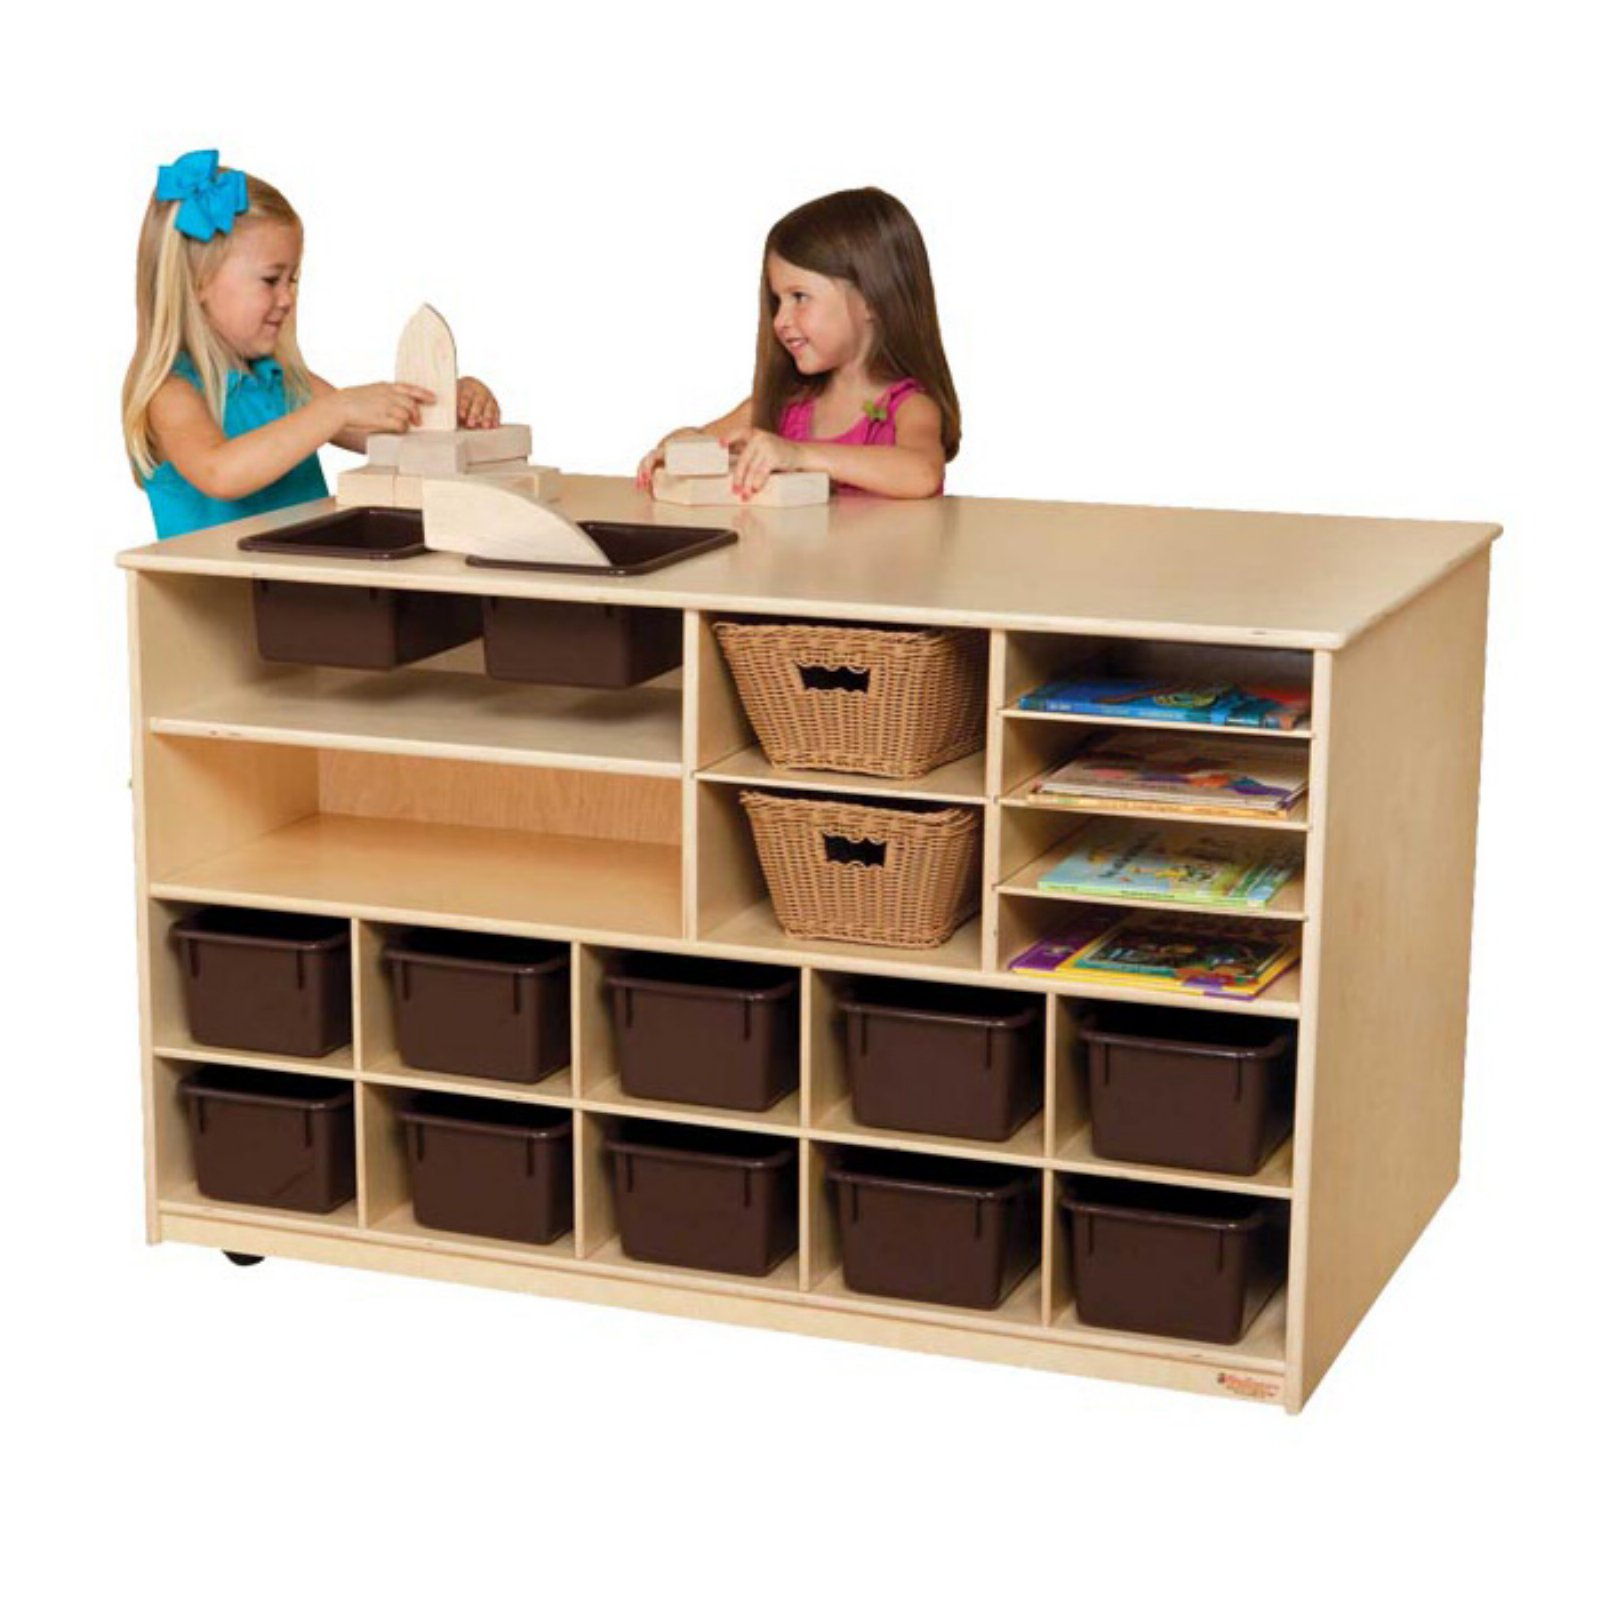 Wood Designs Mobile Storage Island with Trays